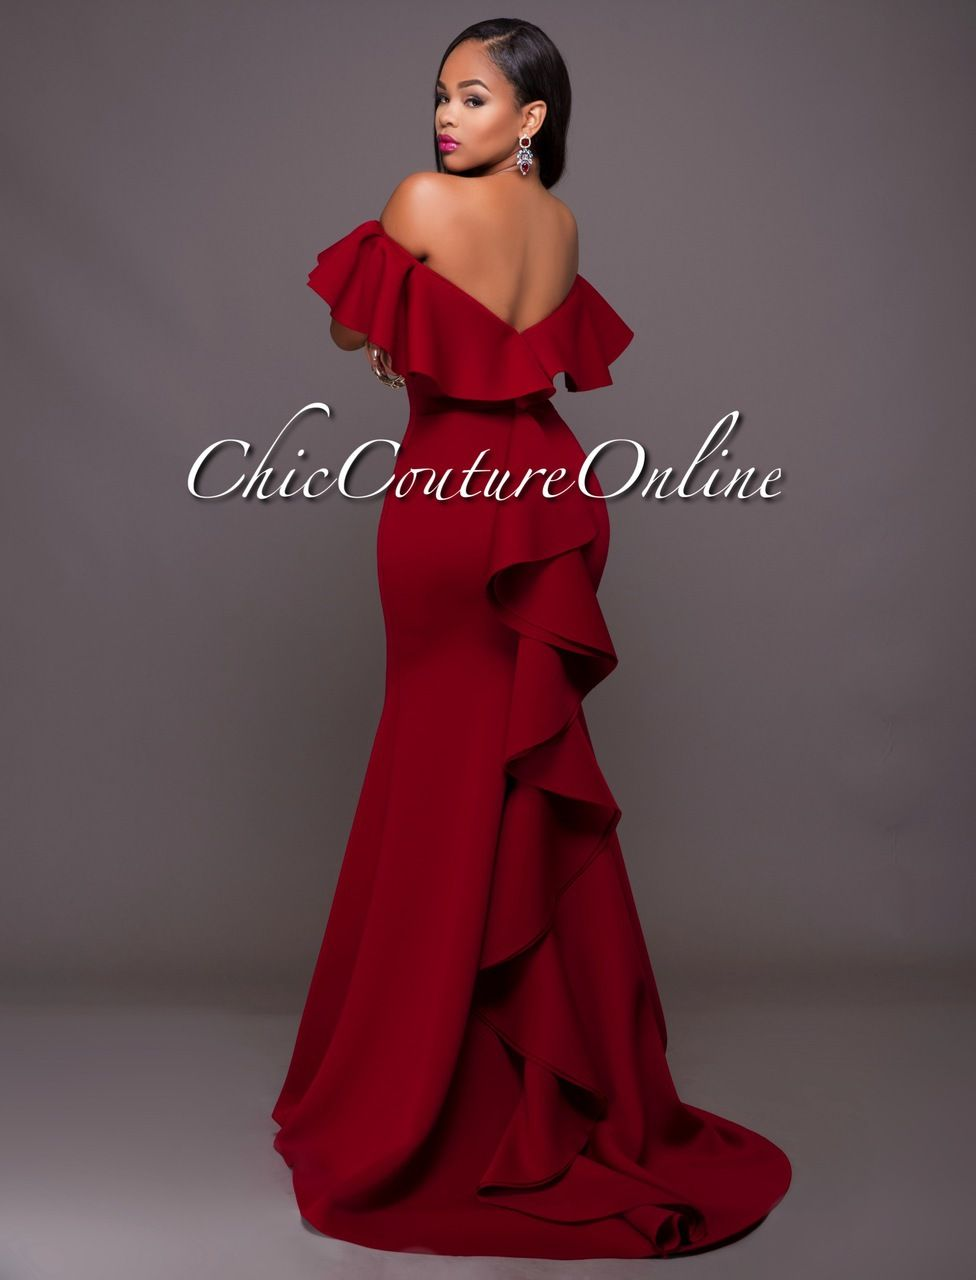 Chic Couture Online - Carlton Burgundy Off-The-Shoulder Ruffle Ponti Gown.(http://www.chiccoutureonline.com/carlton-burgundy-off-the-shoulder-ruffle-ponti-gown/)